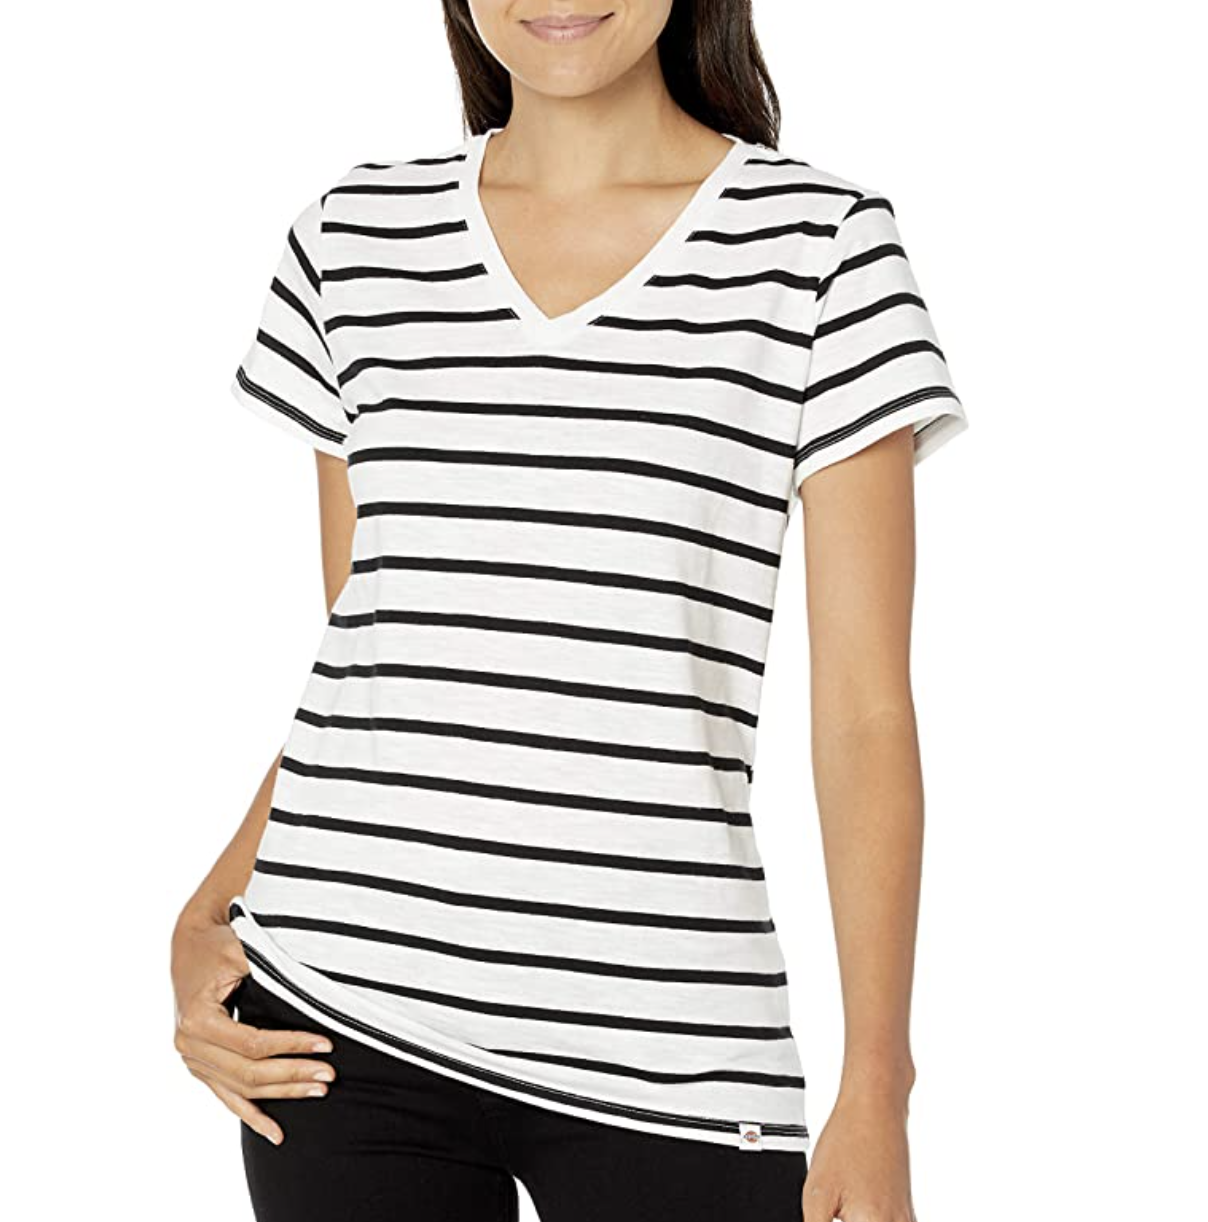 gifts-for-minimalists-shirt